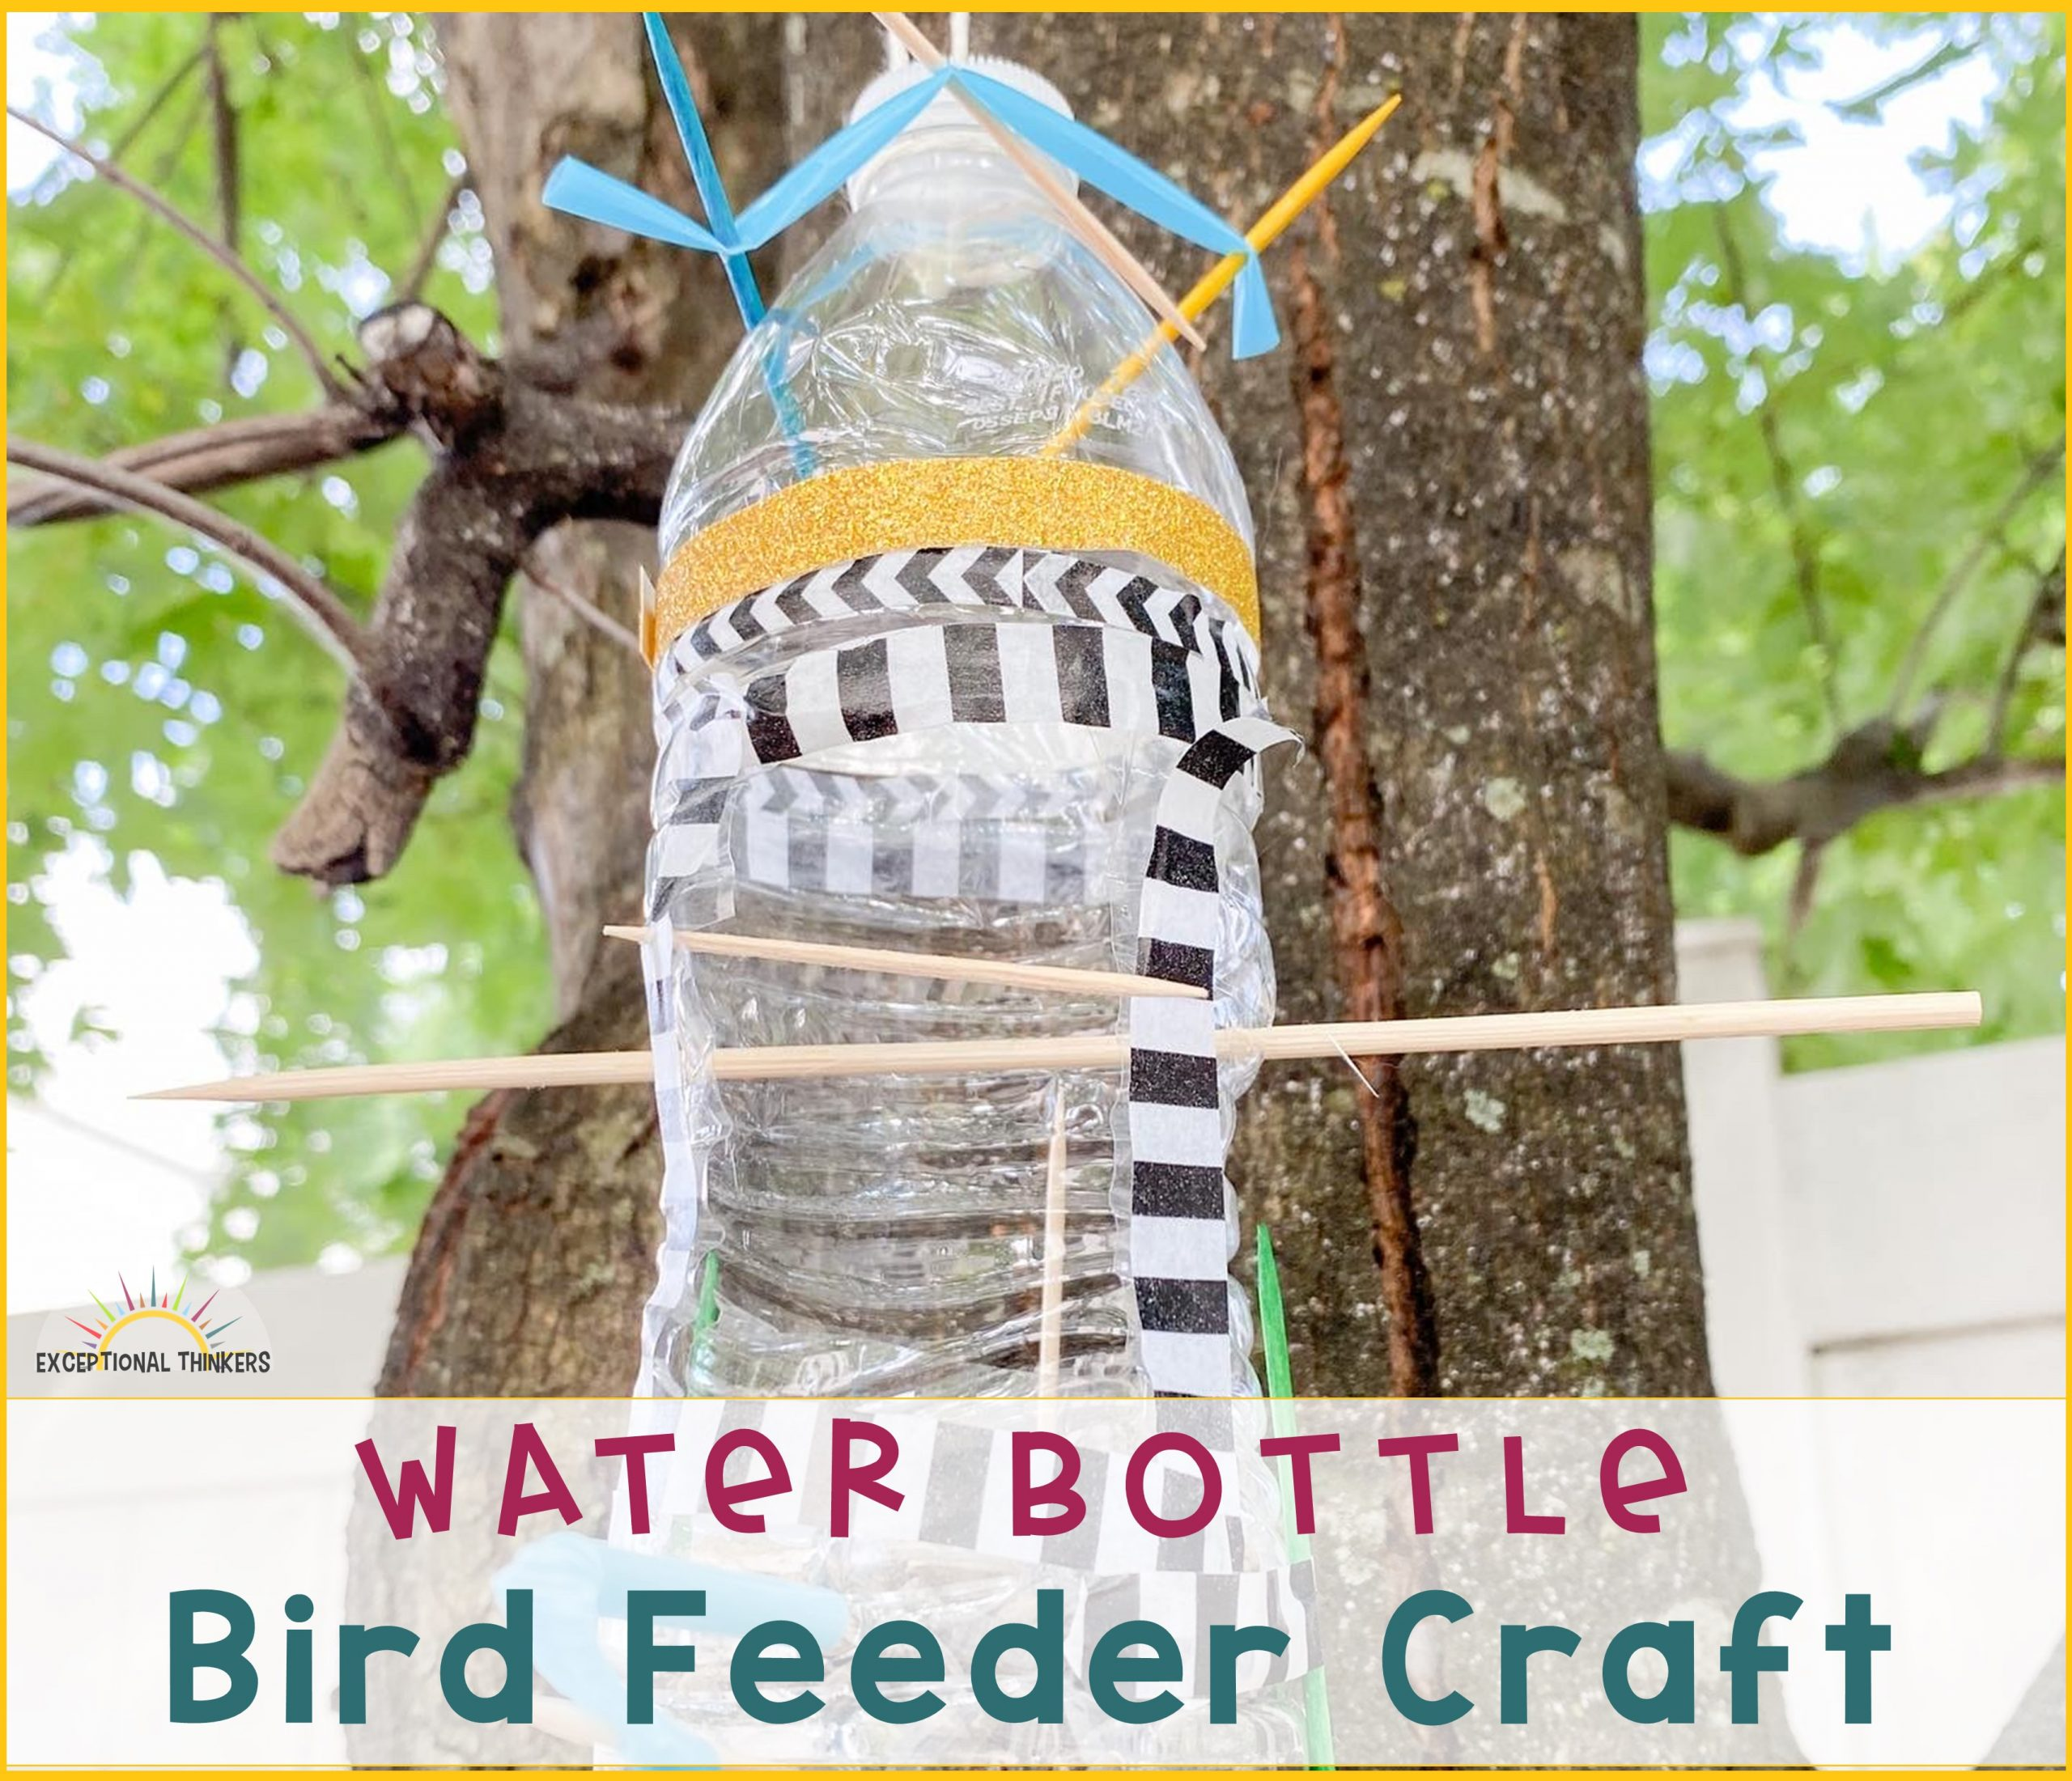 How to Make a Water Bottle Bird Feeder Craft